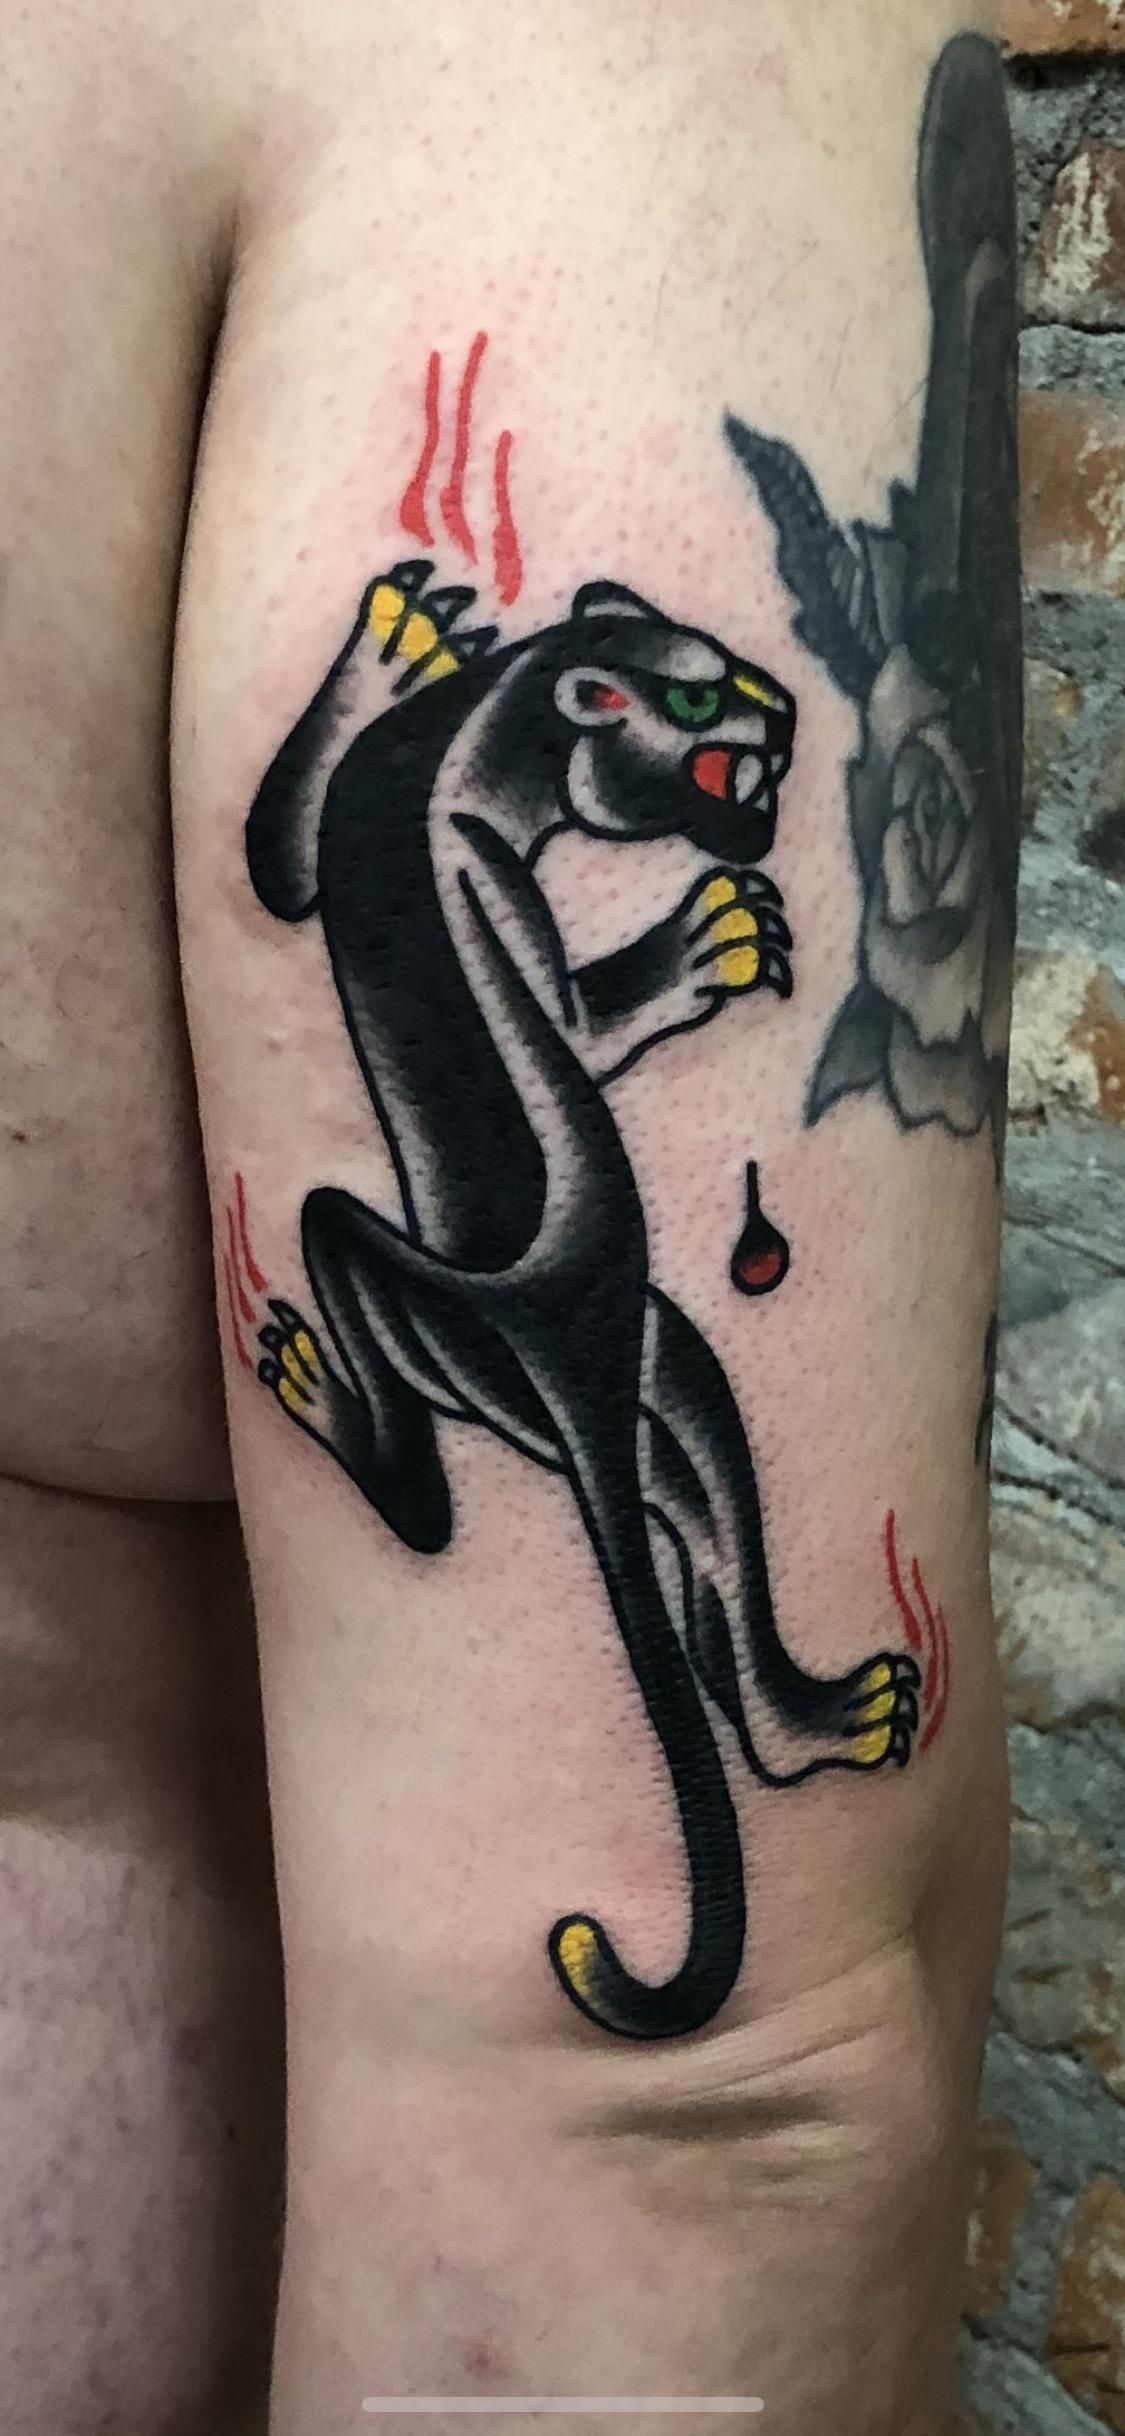 Got this heater done by phil at st marks tattoo in los